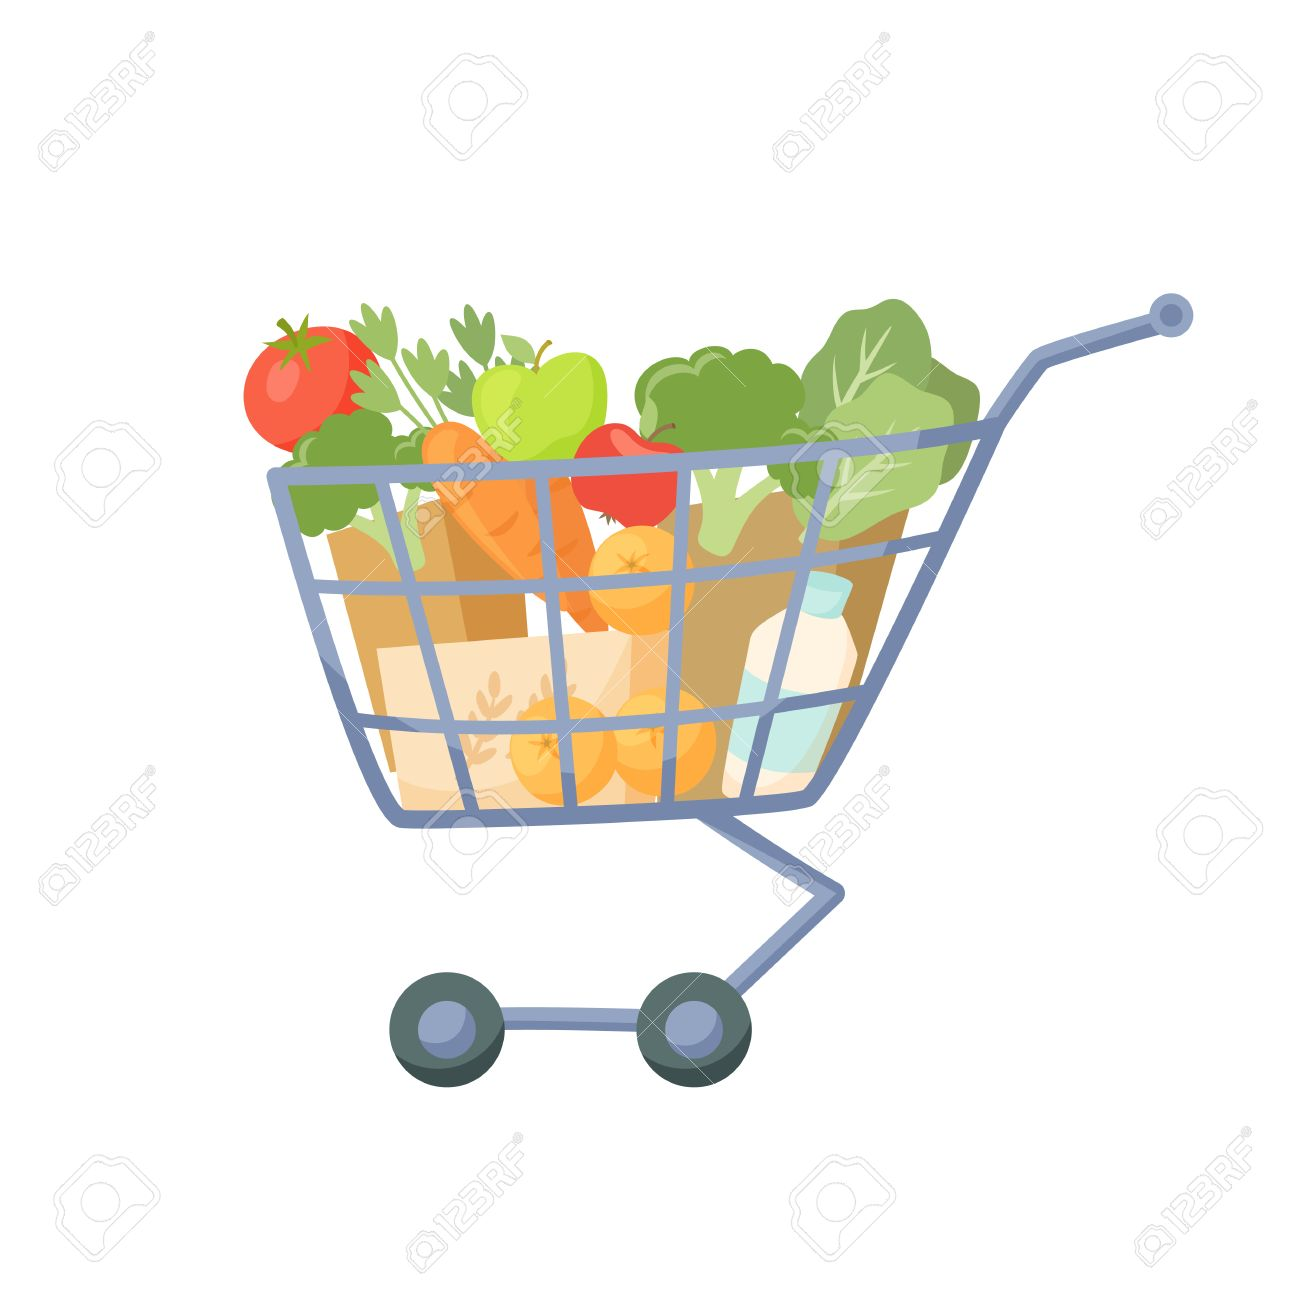 Shopping Cart Full Of Products Supermarket Trolley Cartoon Royalty Free Cliparts Vectors And Stock Illustration Image 60390758